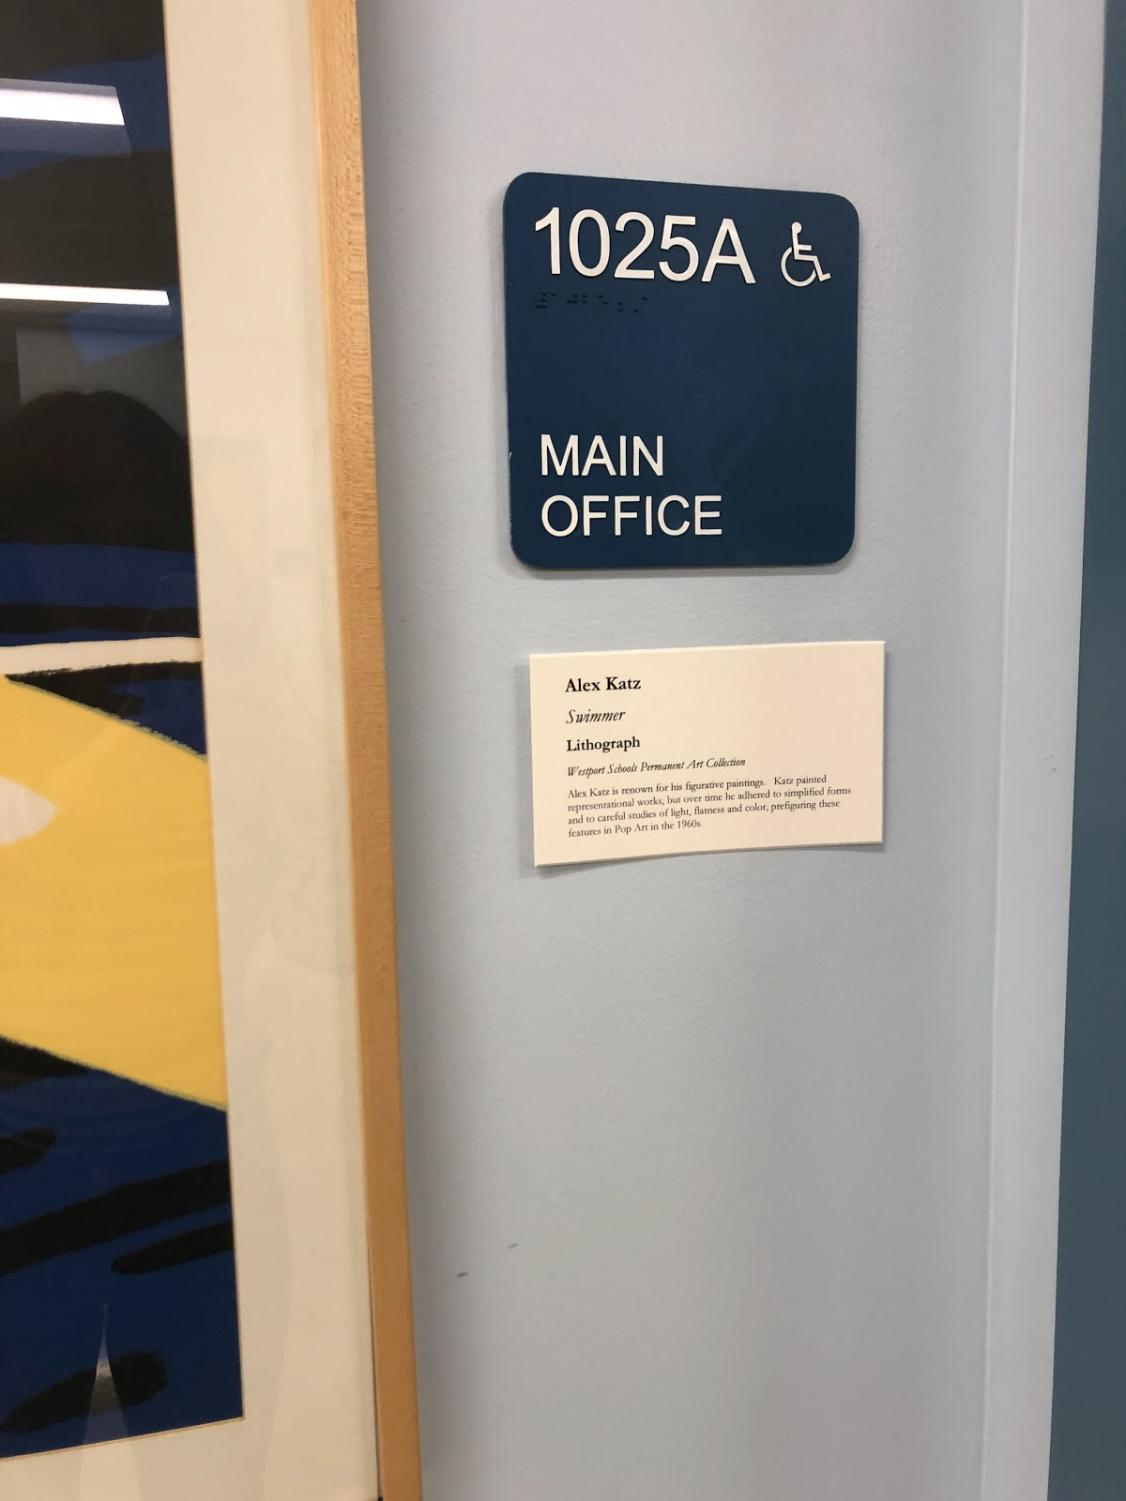 Where the magic happens: The main office houses the Staples administrators and grade level assistants that make the rules of what happens at Staples.